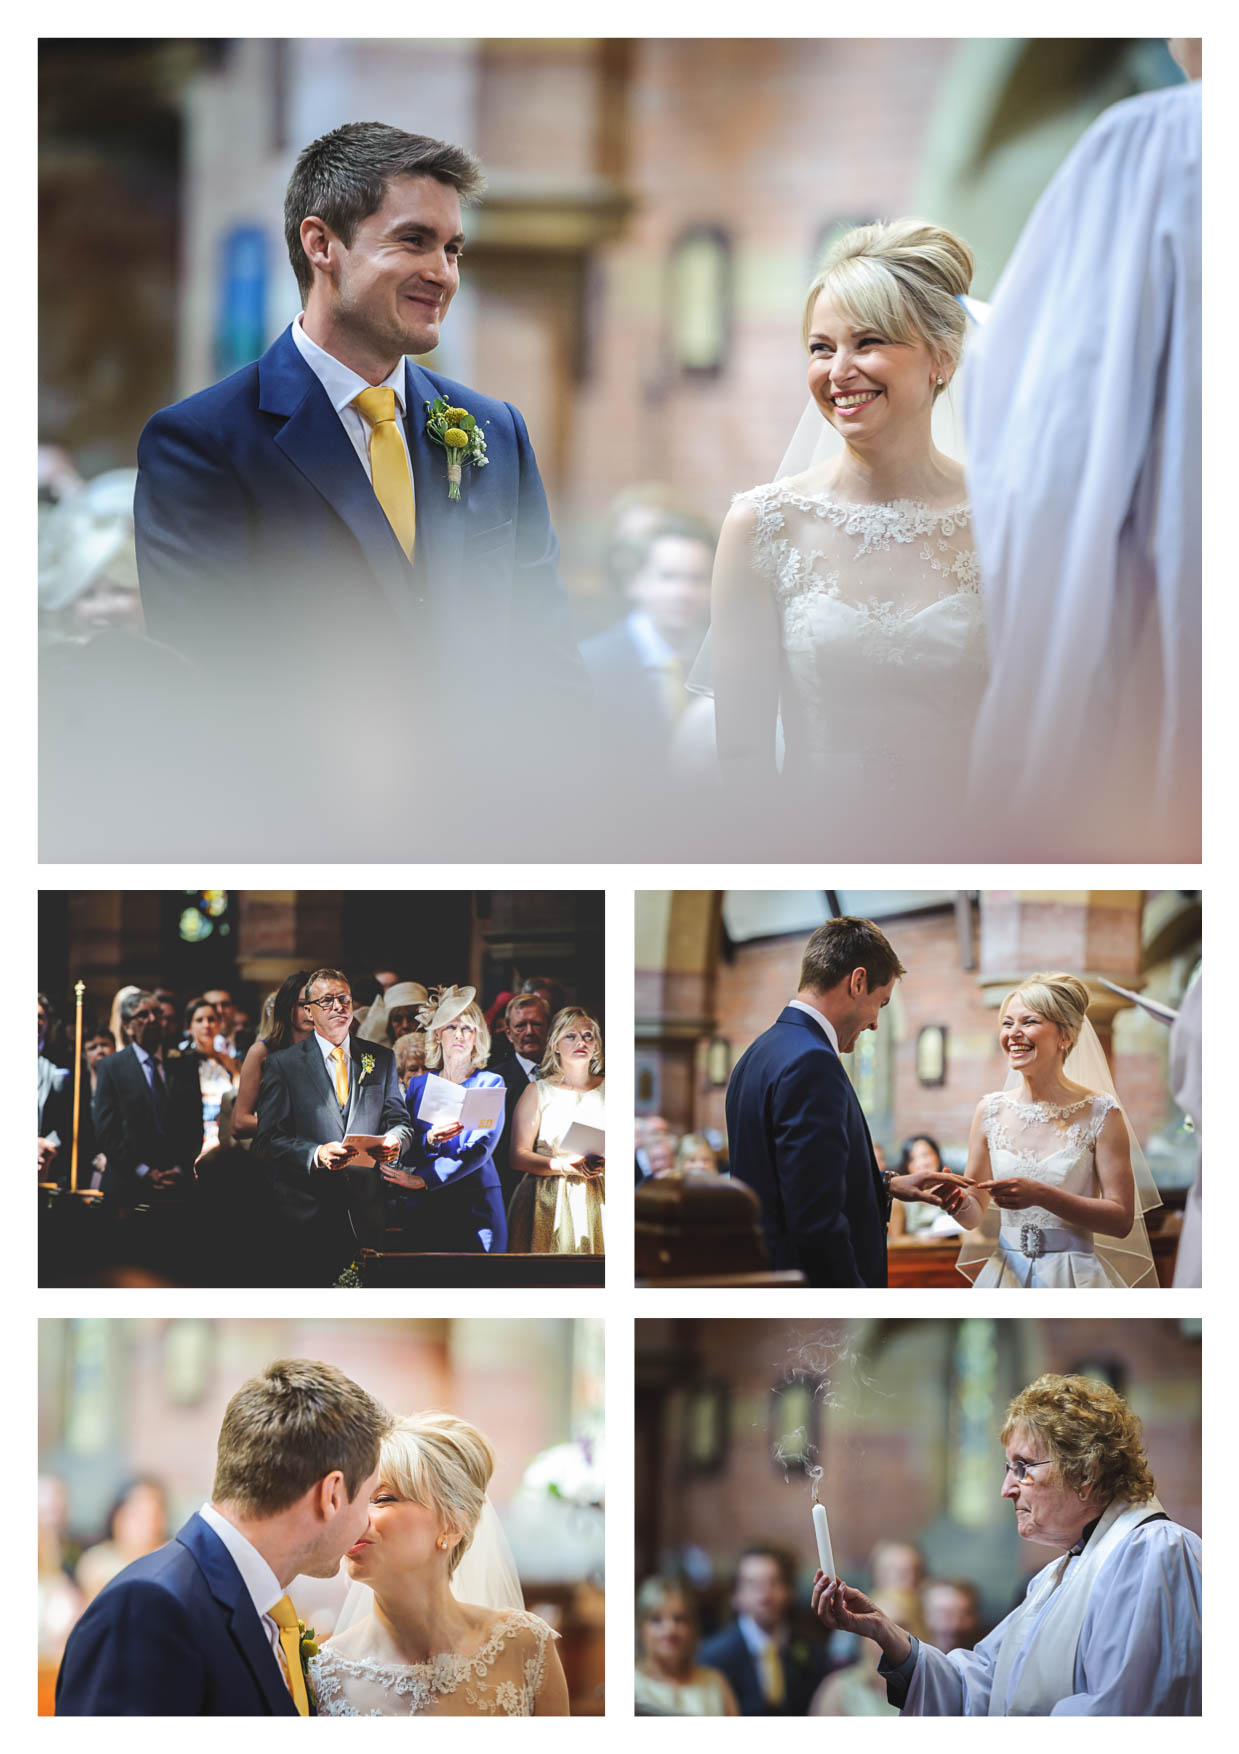 Photos of a wedding at Penarth Pier Pavilion by Cardiff Wedding Photographers